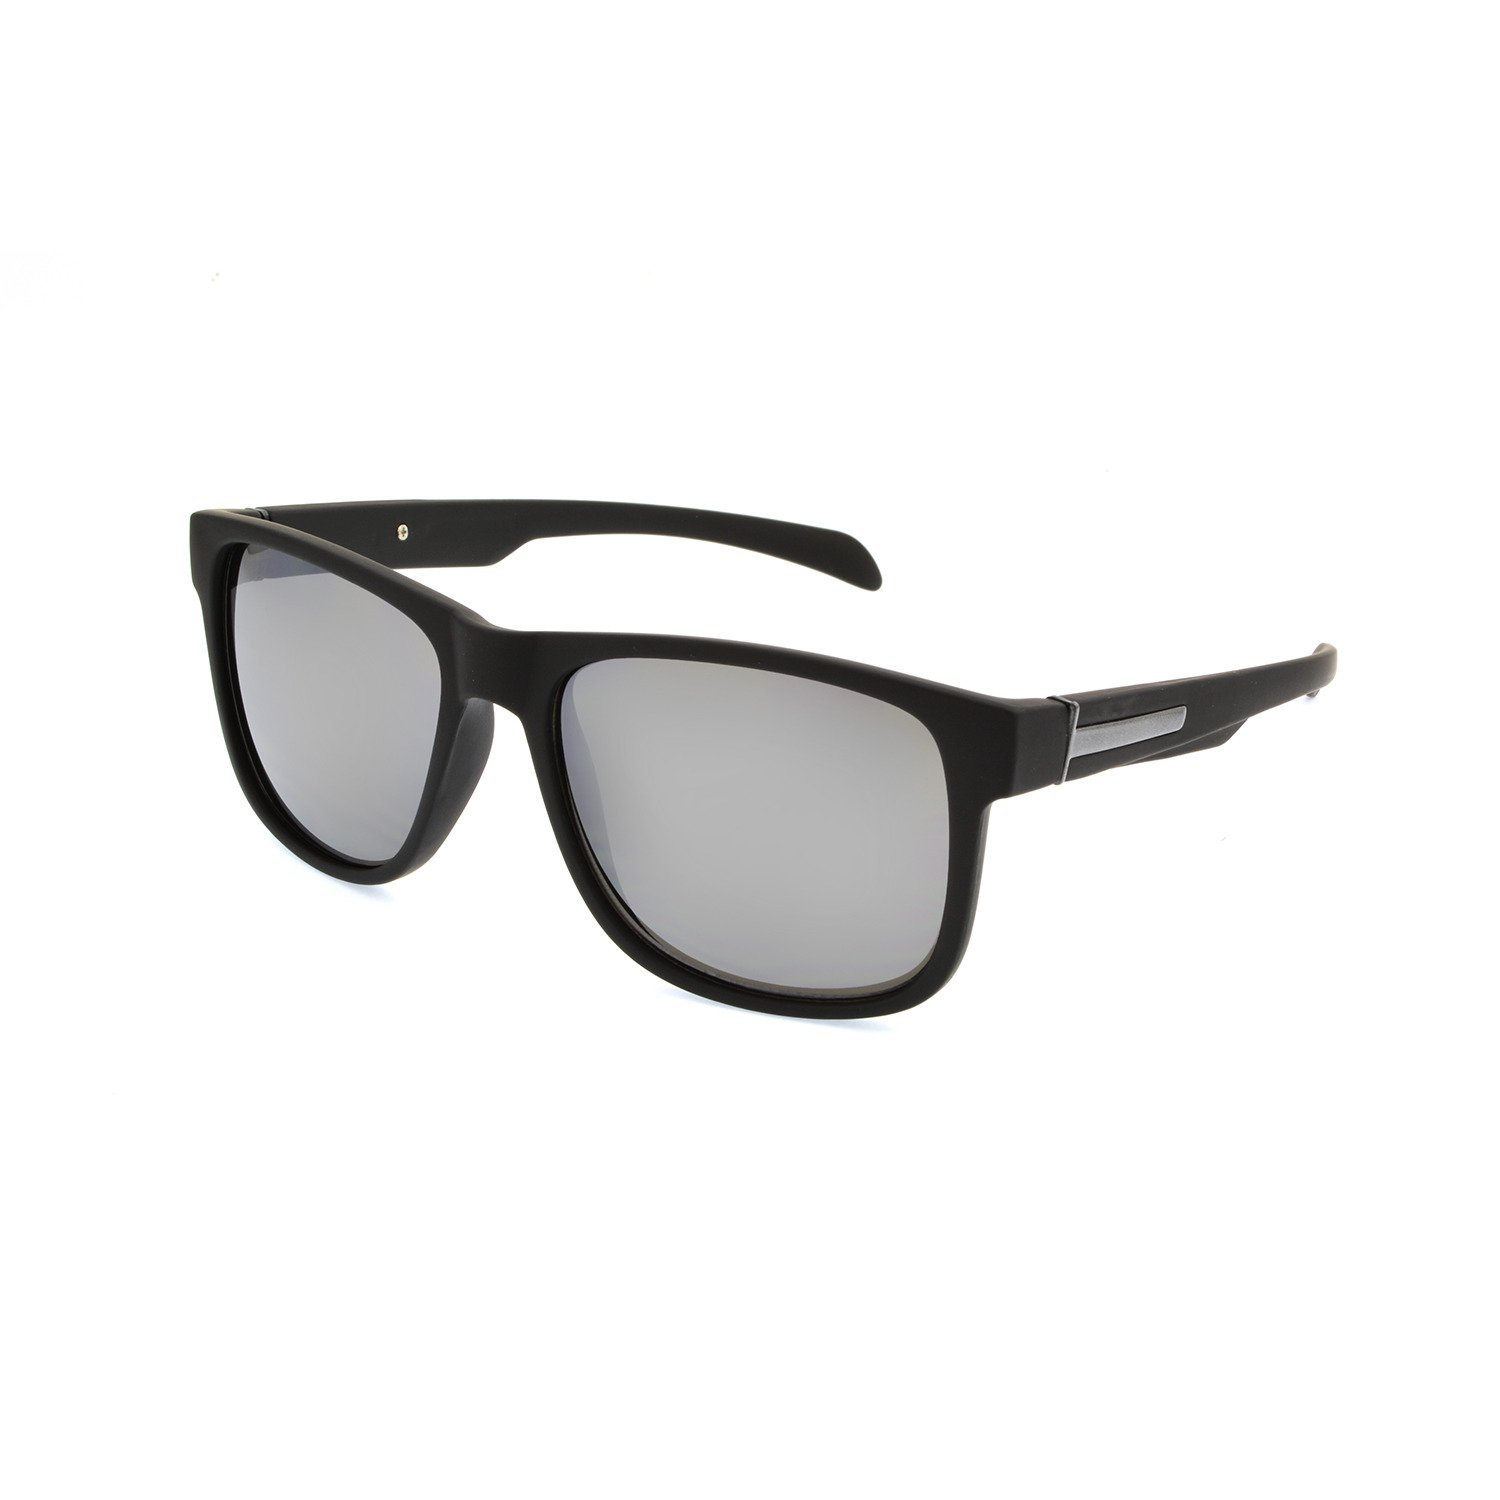 Display product reviews for Extreme Optiks Drivers Ramble Sunglasses 44f7e0cf43bcf